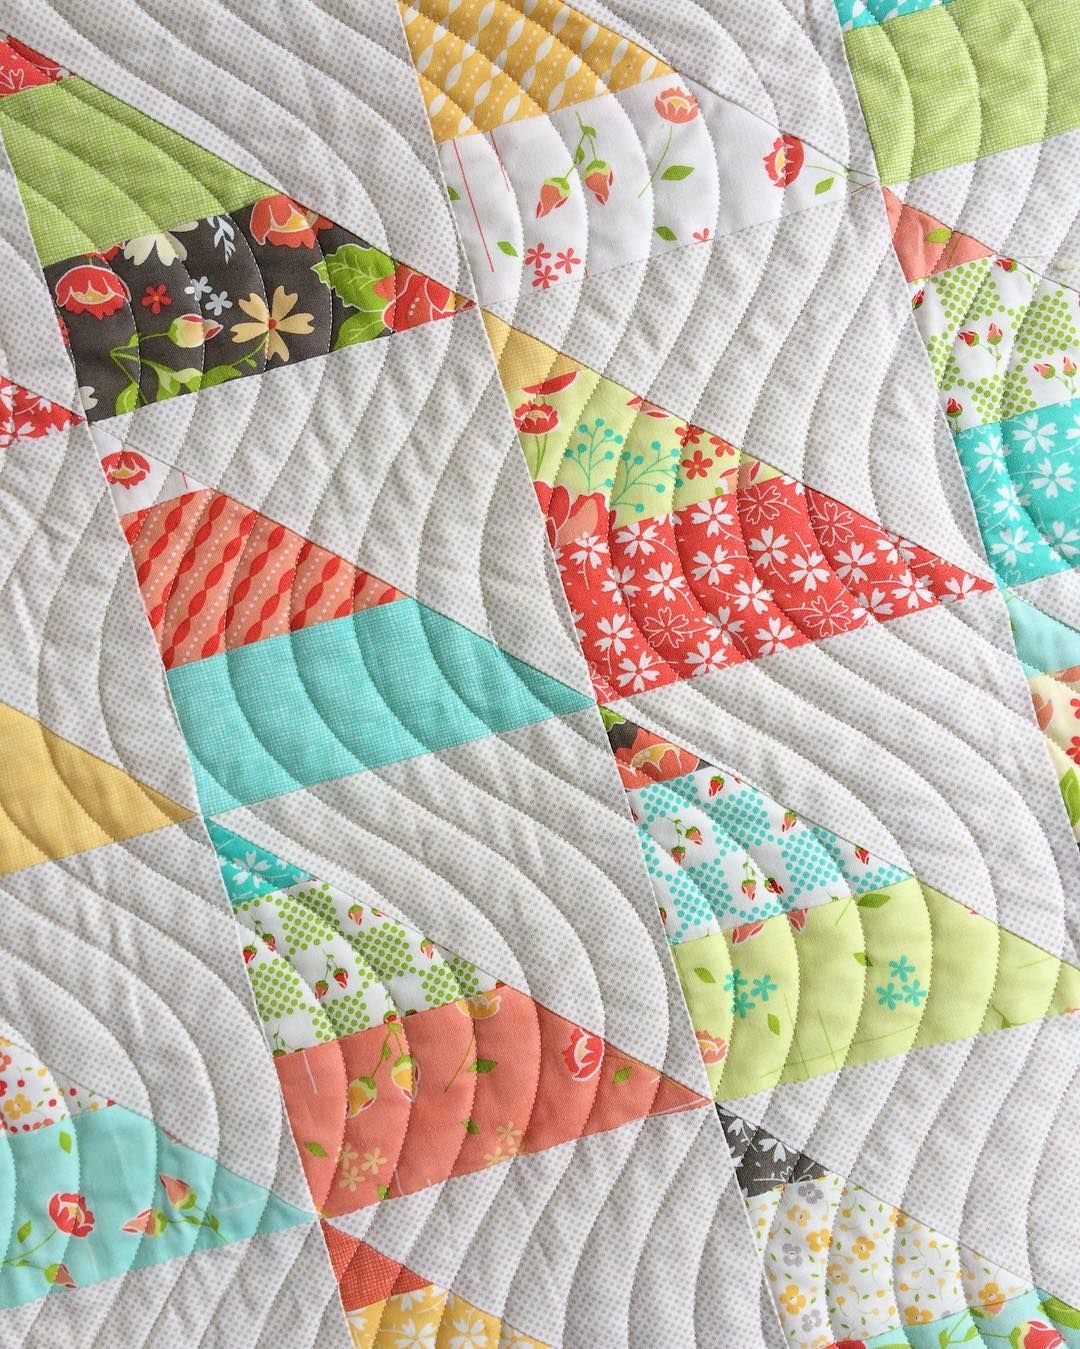 Best Threads For Machine Quilting: Love The Wavy Line Quilting And The Patchwork Half Square